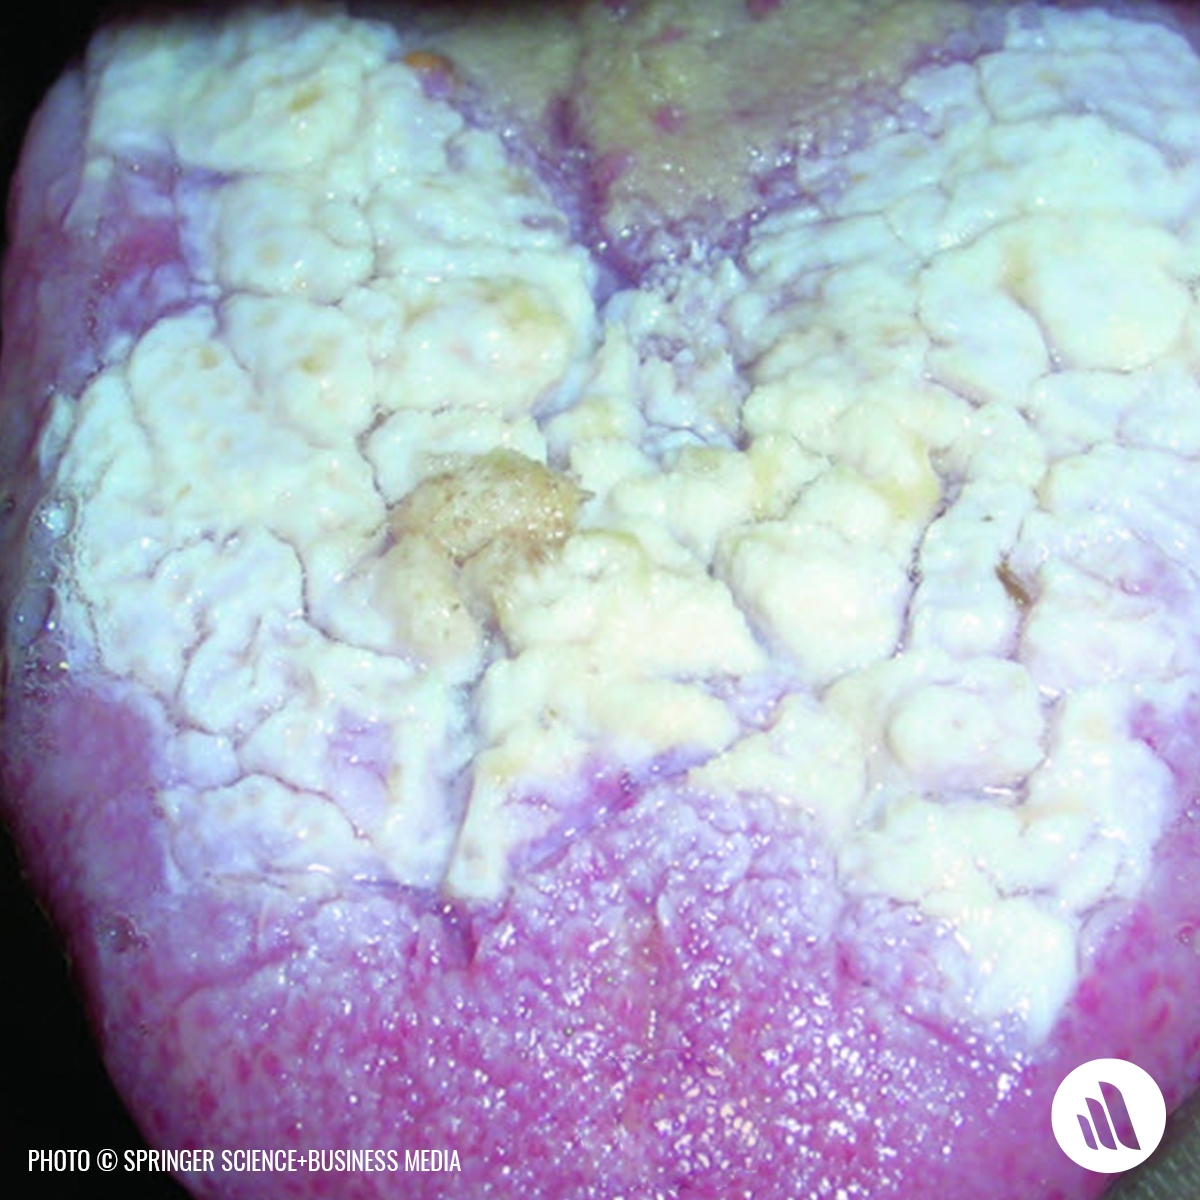 Can you name this condition? [Hint: The irritated spot appears white because it has a thickened layer of keratin, which normally is less abundant in the oral mucosa.] #Medical #Trivia https://t.co/YbYRMdhbwq